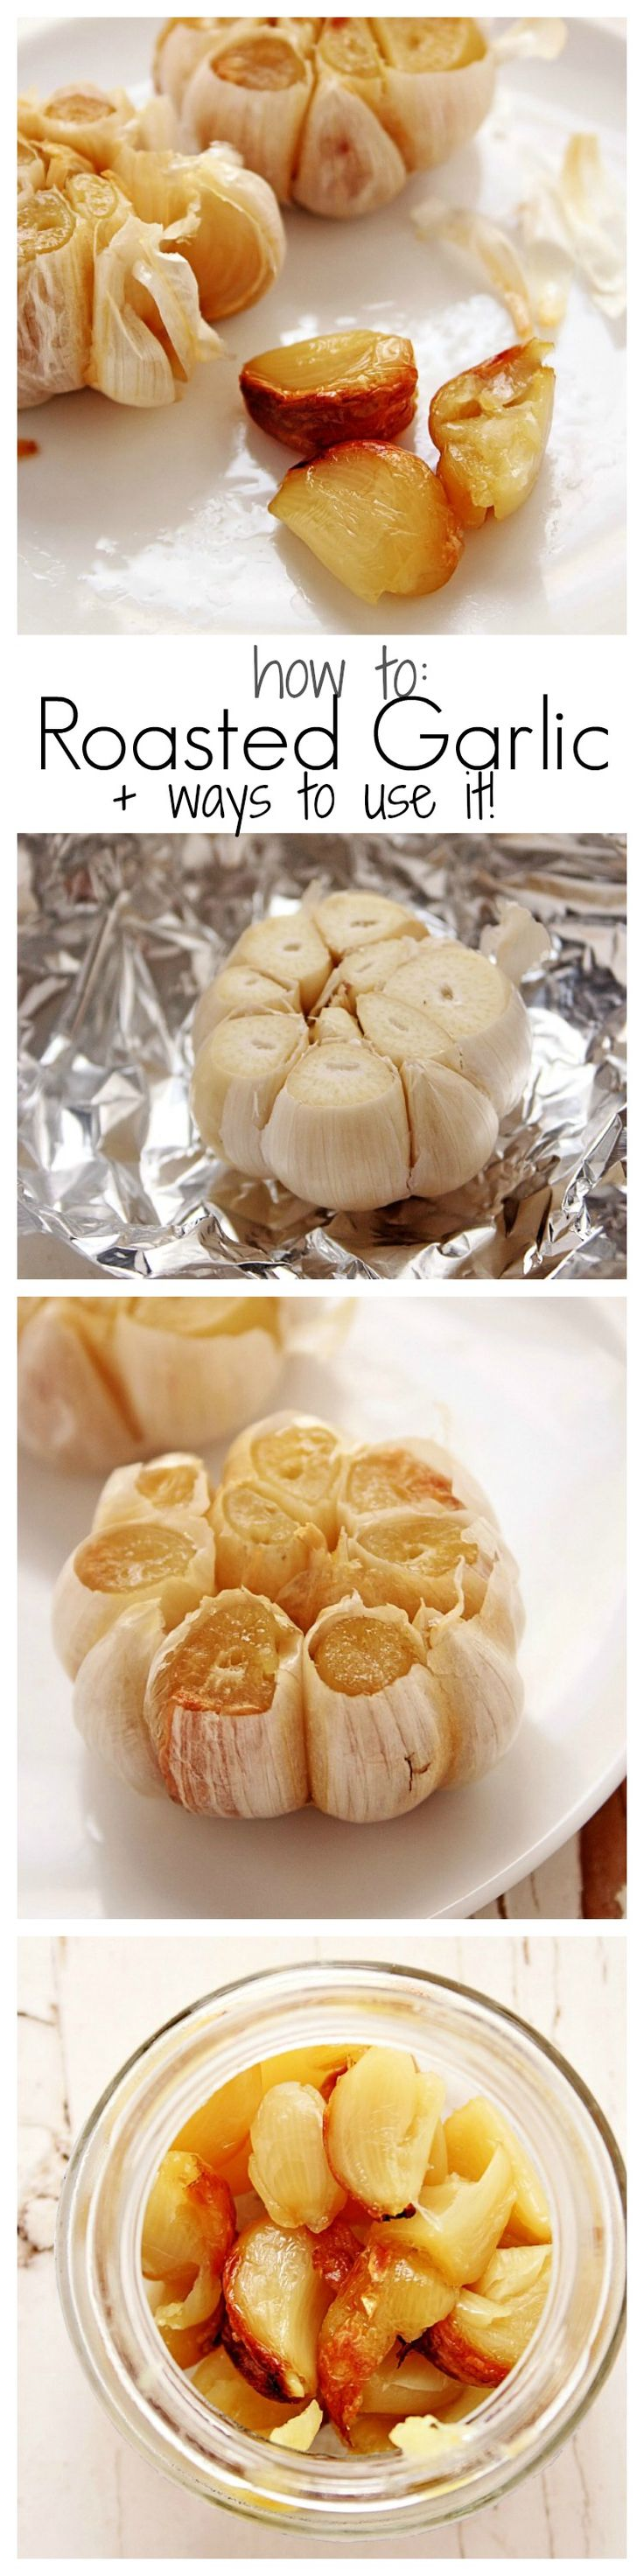 How to Roast Garlic in the Oven and Ways to Use It. – I Quit Sugar